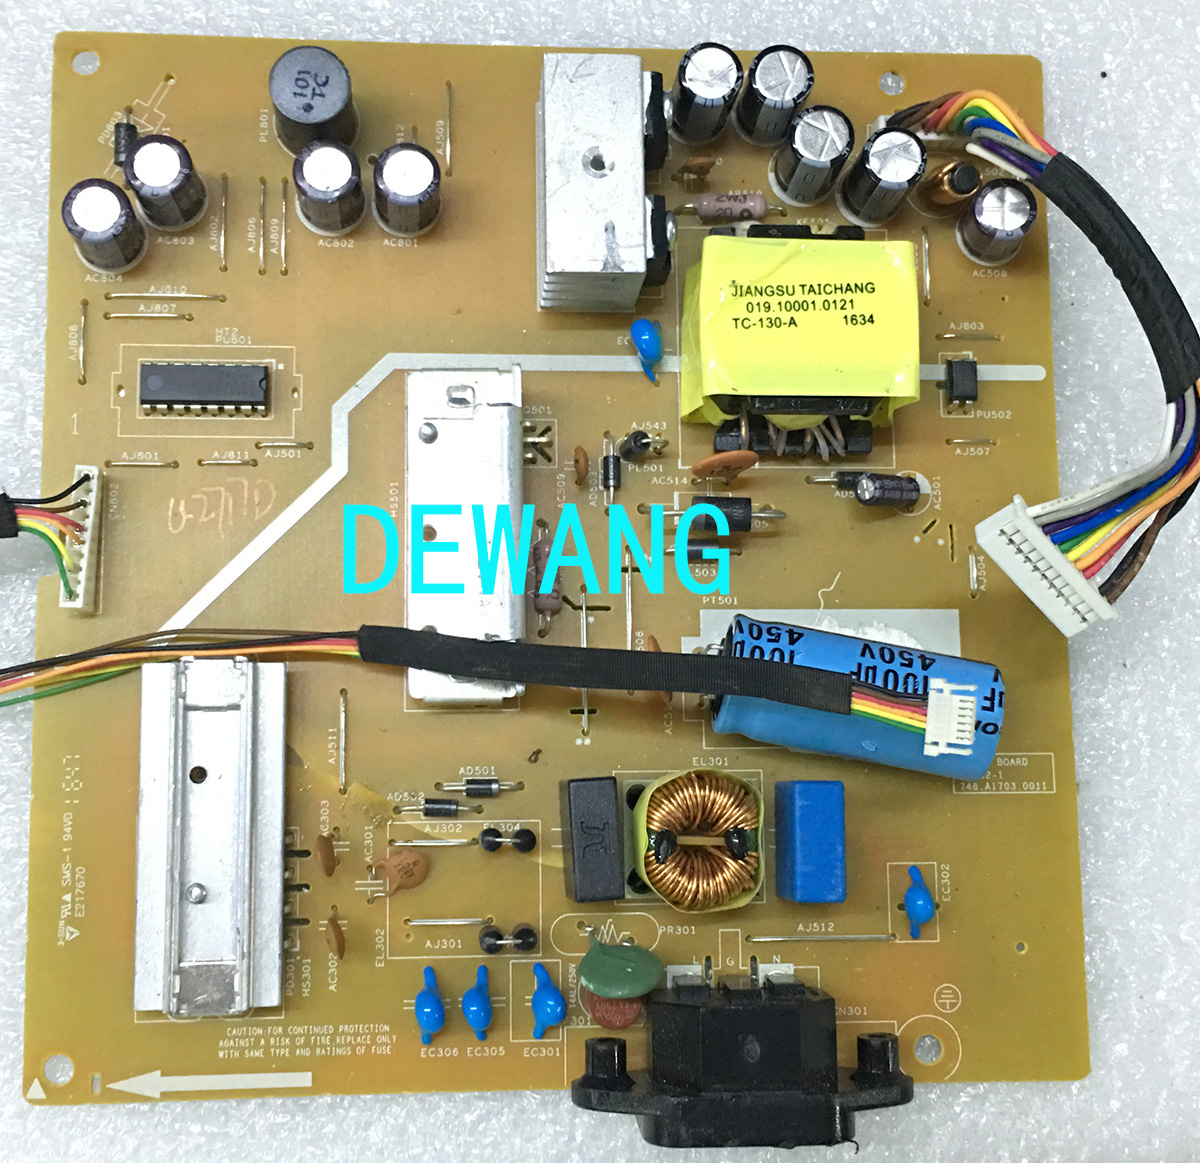 748.A1703.0011 dell U2717D power supply board